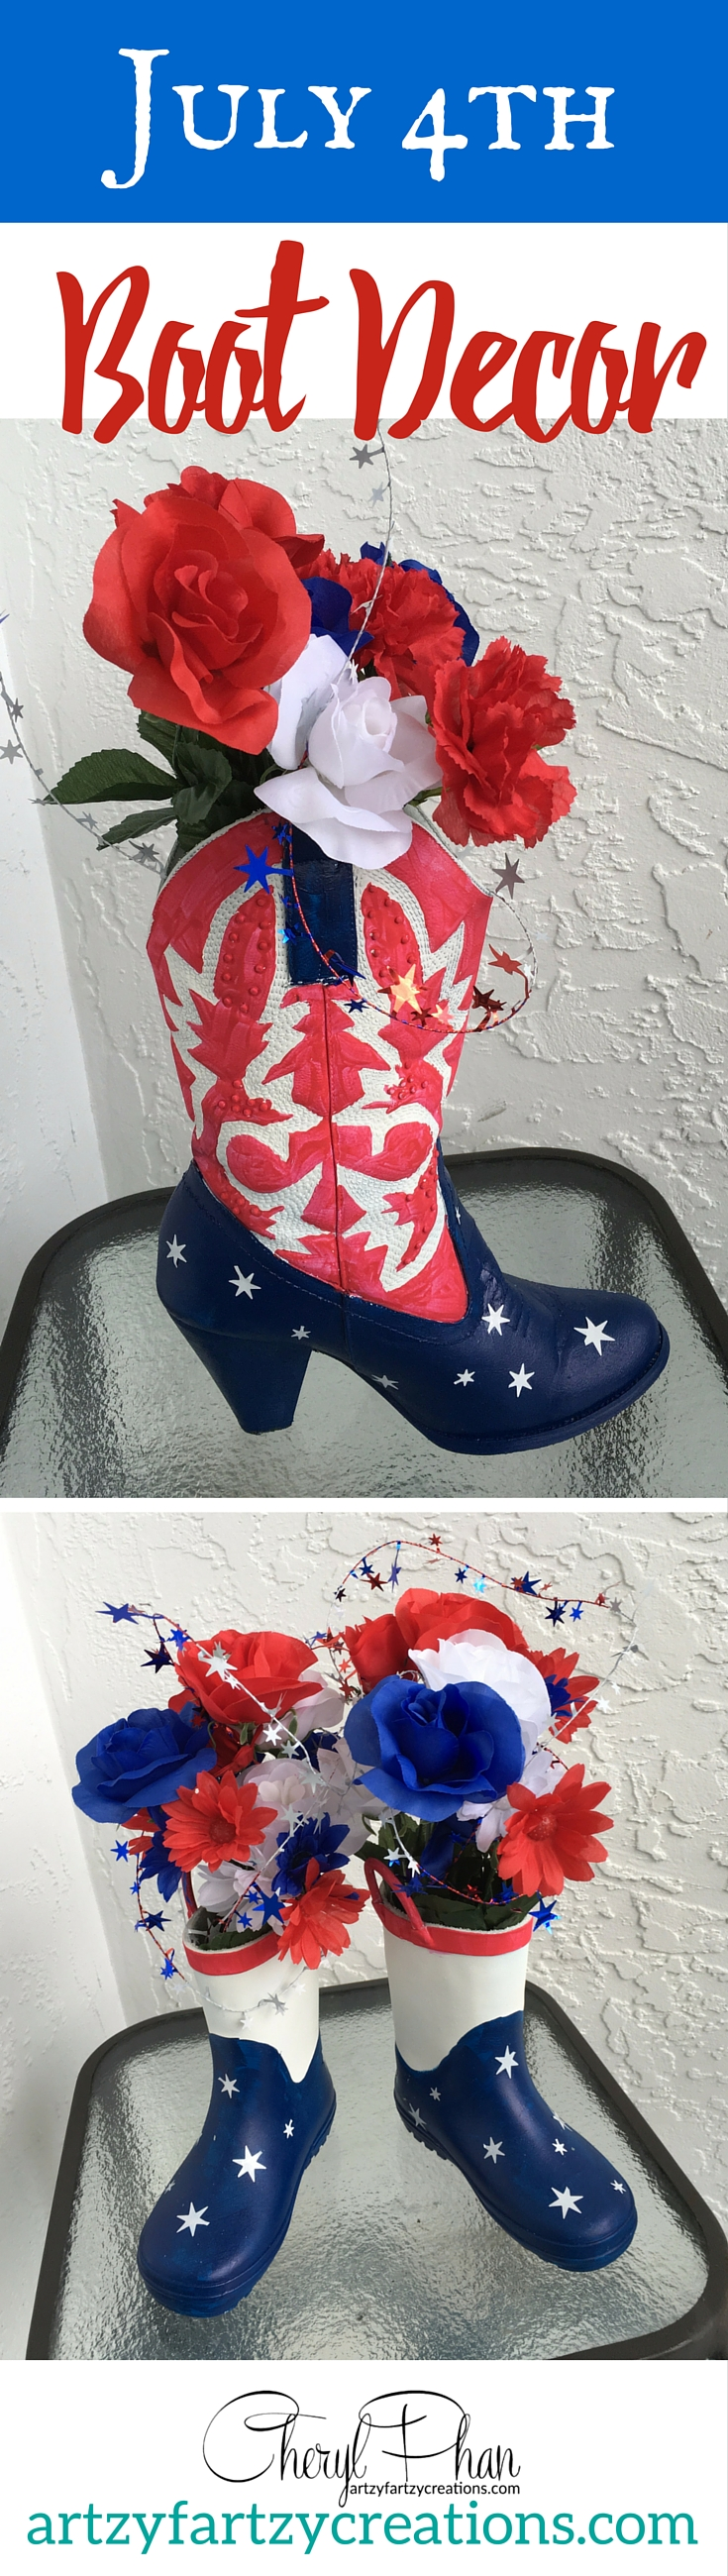 July 4 Boot Decor